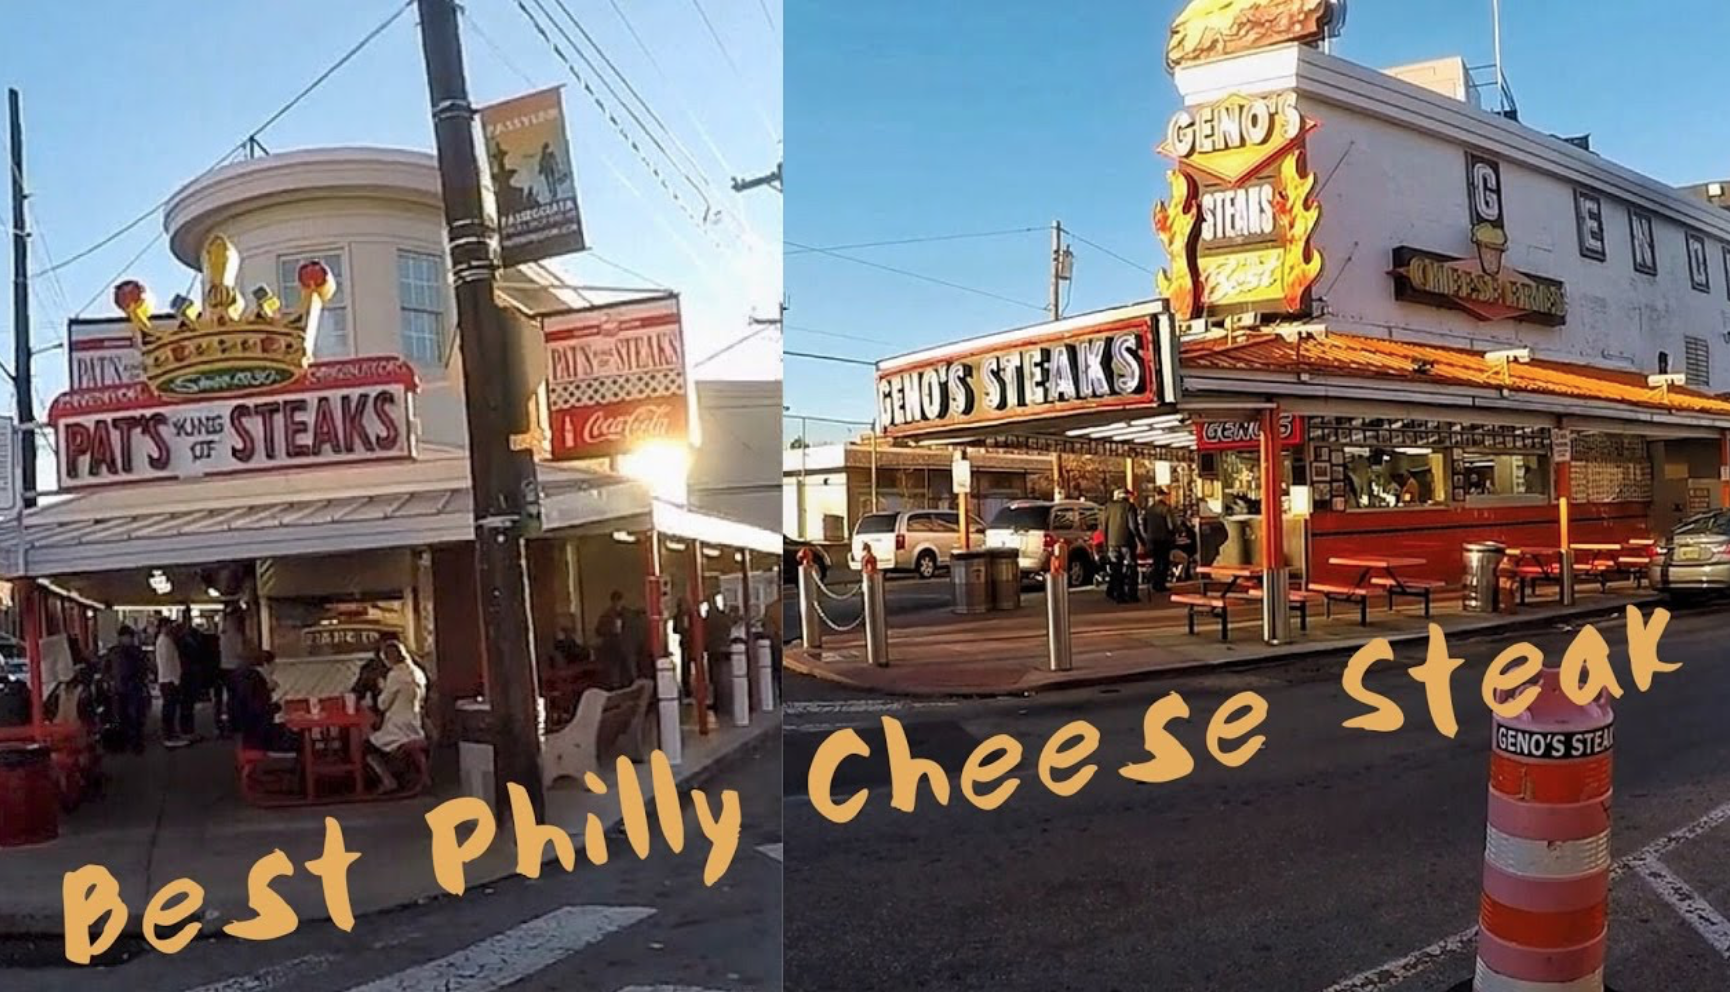 Pat's or Geno's? You decide on the Great Jersey Shore HOG cheesesteak throwdown.